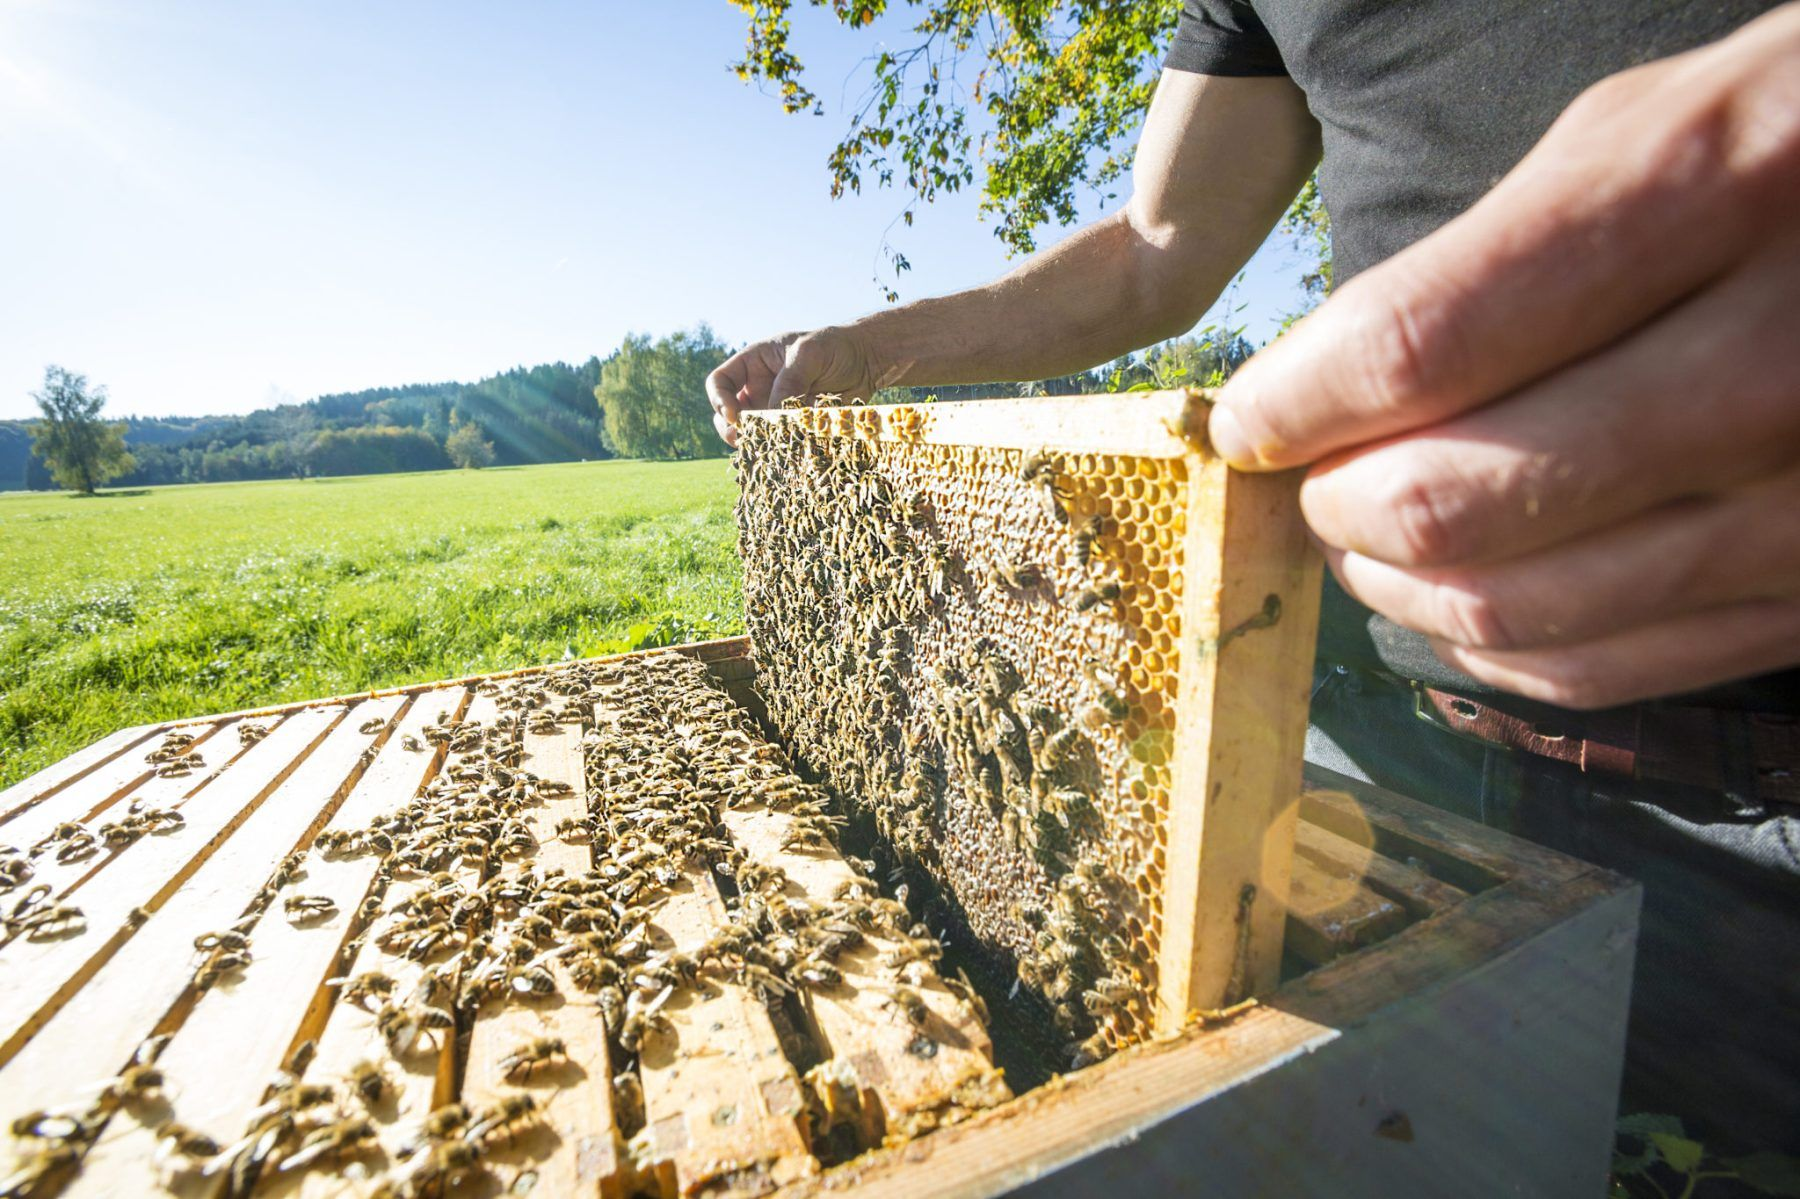 Global honey production cannot keep up with increasing demands.